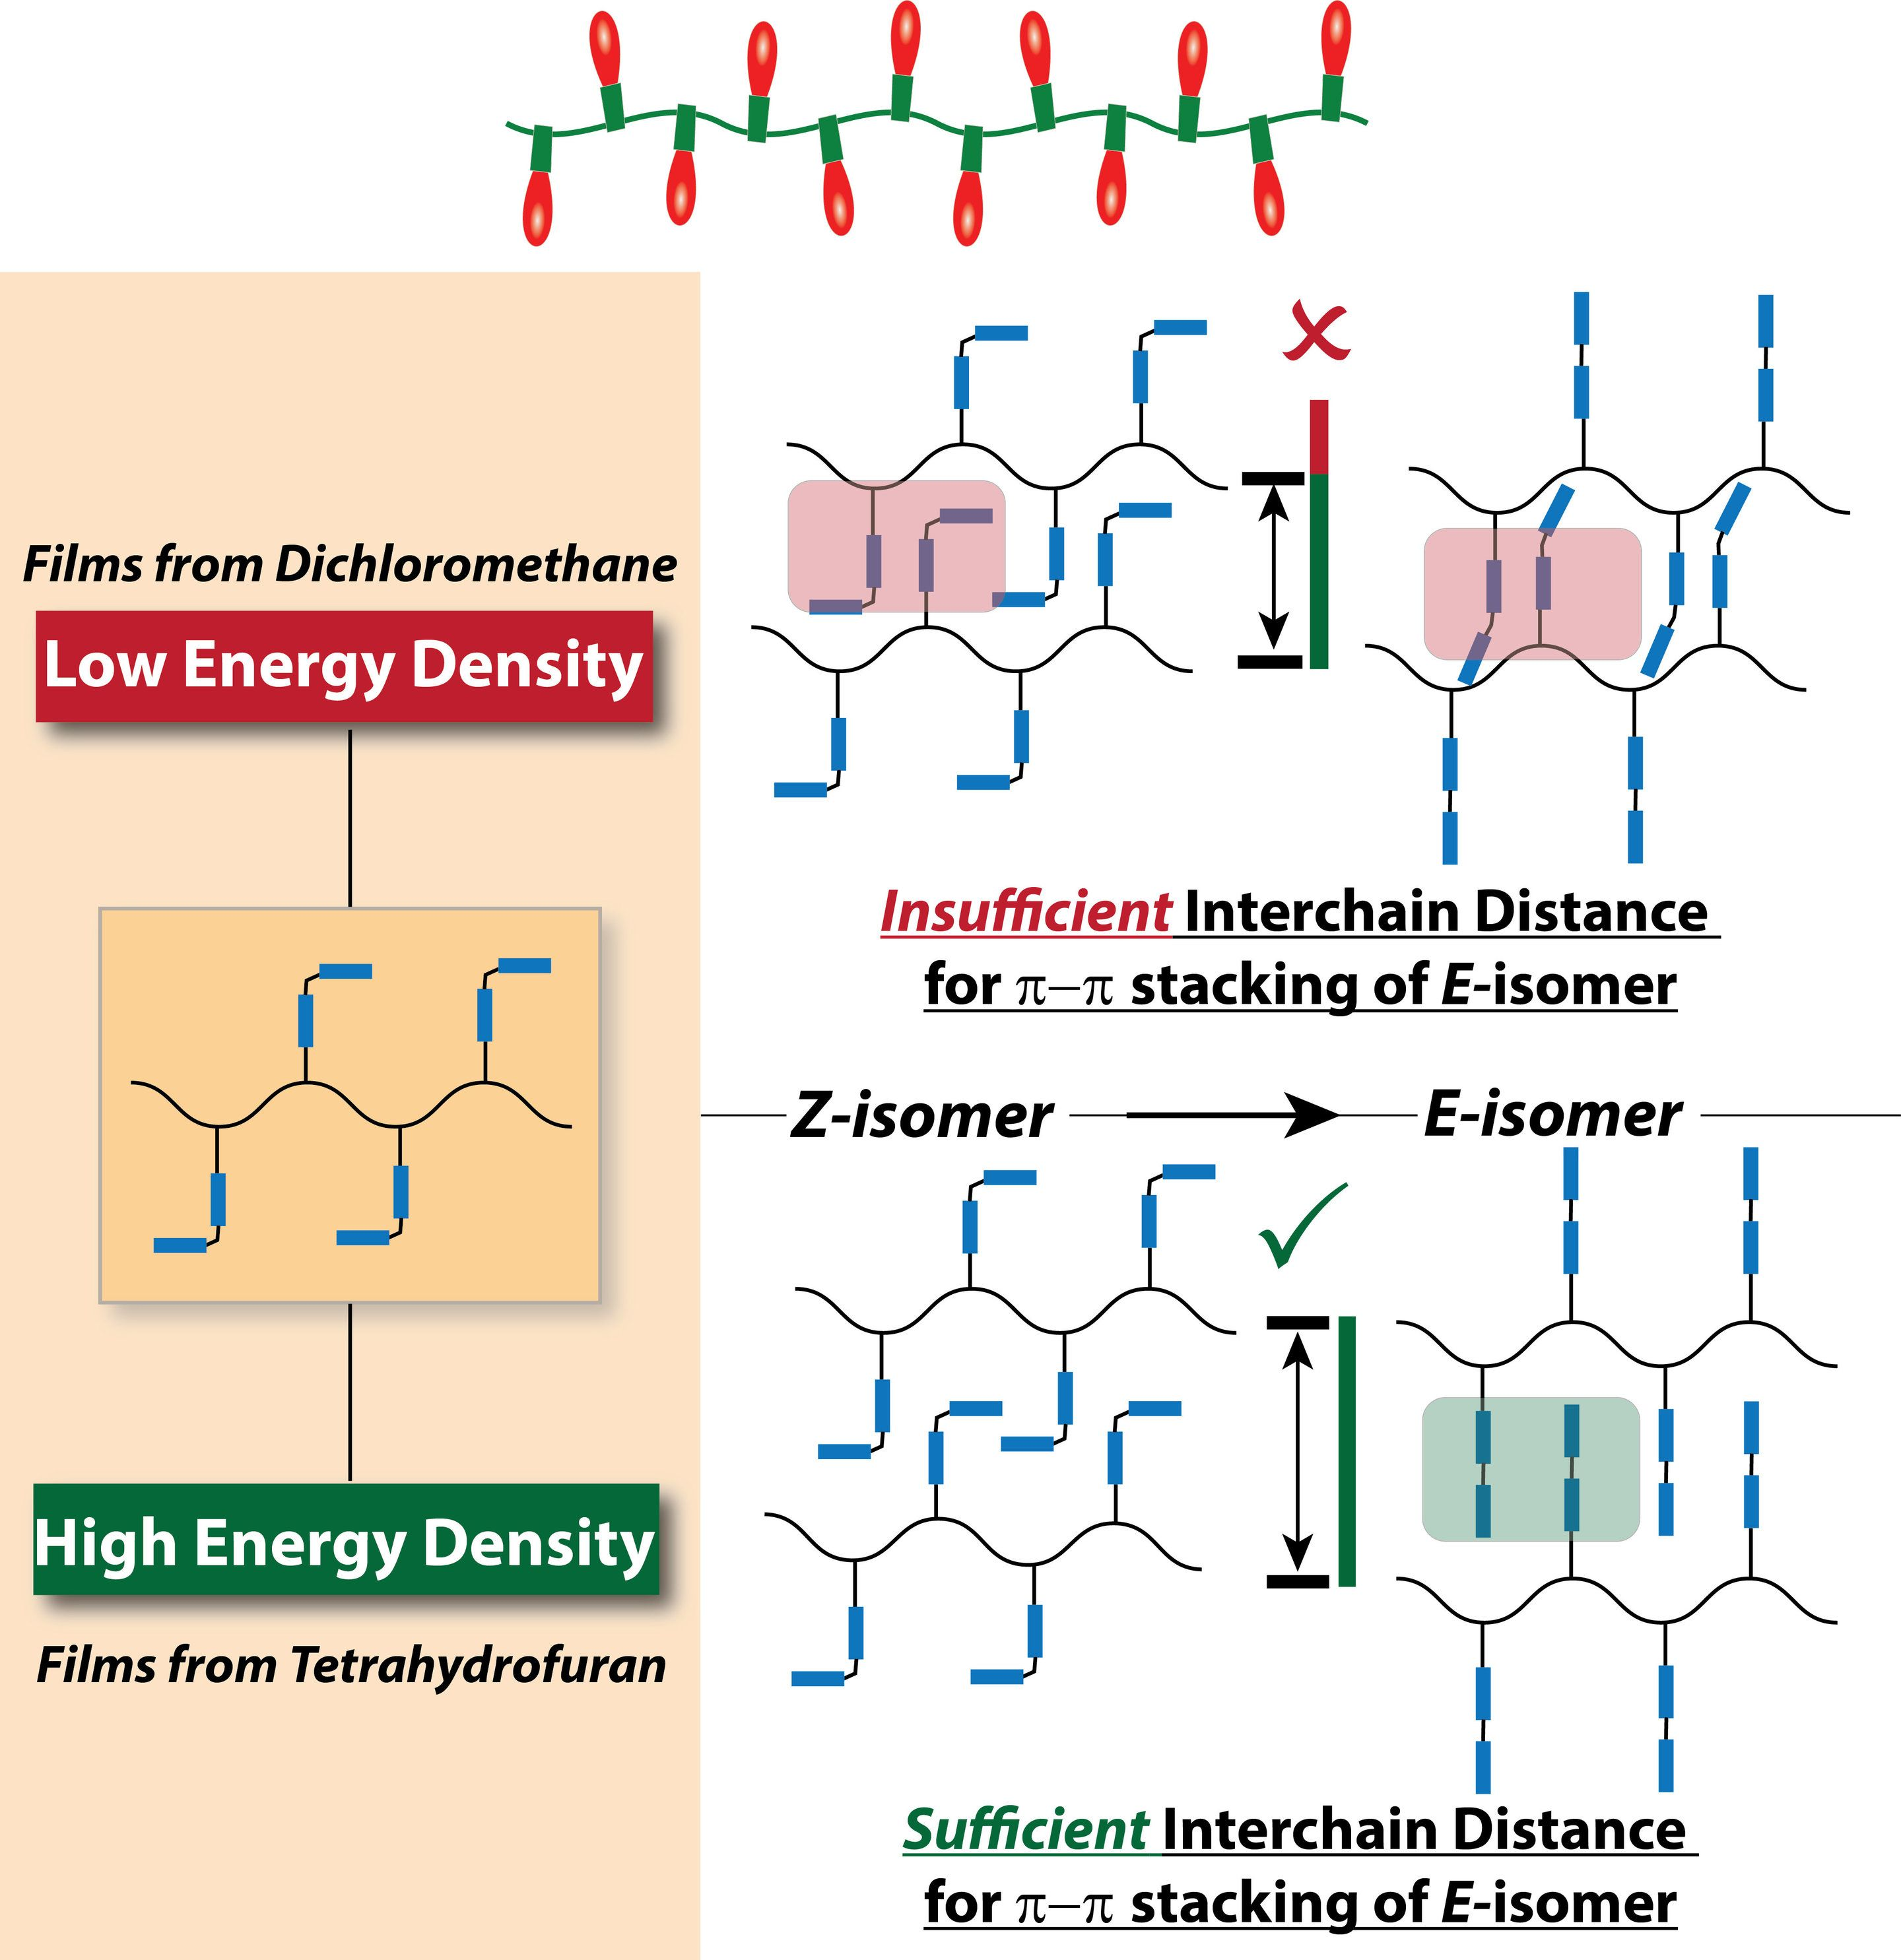 Indywatch Feed Tech Mbed Using Nixie Tubes Electrical Engineering Stack Exchange Materials Chemists Have Been Trying For Years To Make A New Type Of Battery That Can Store Solar Or Other Light Sourced Energy In Chemical Bonds Rather Than